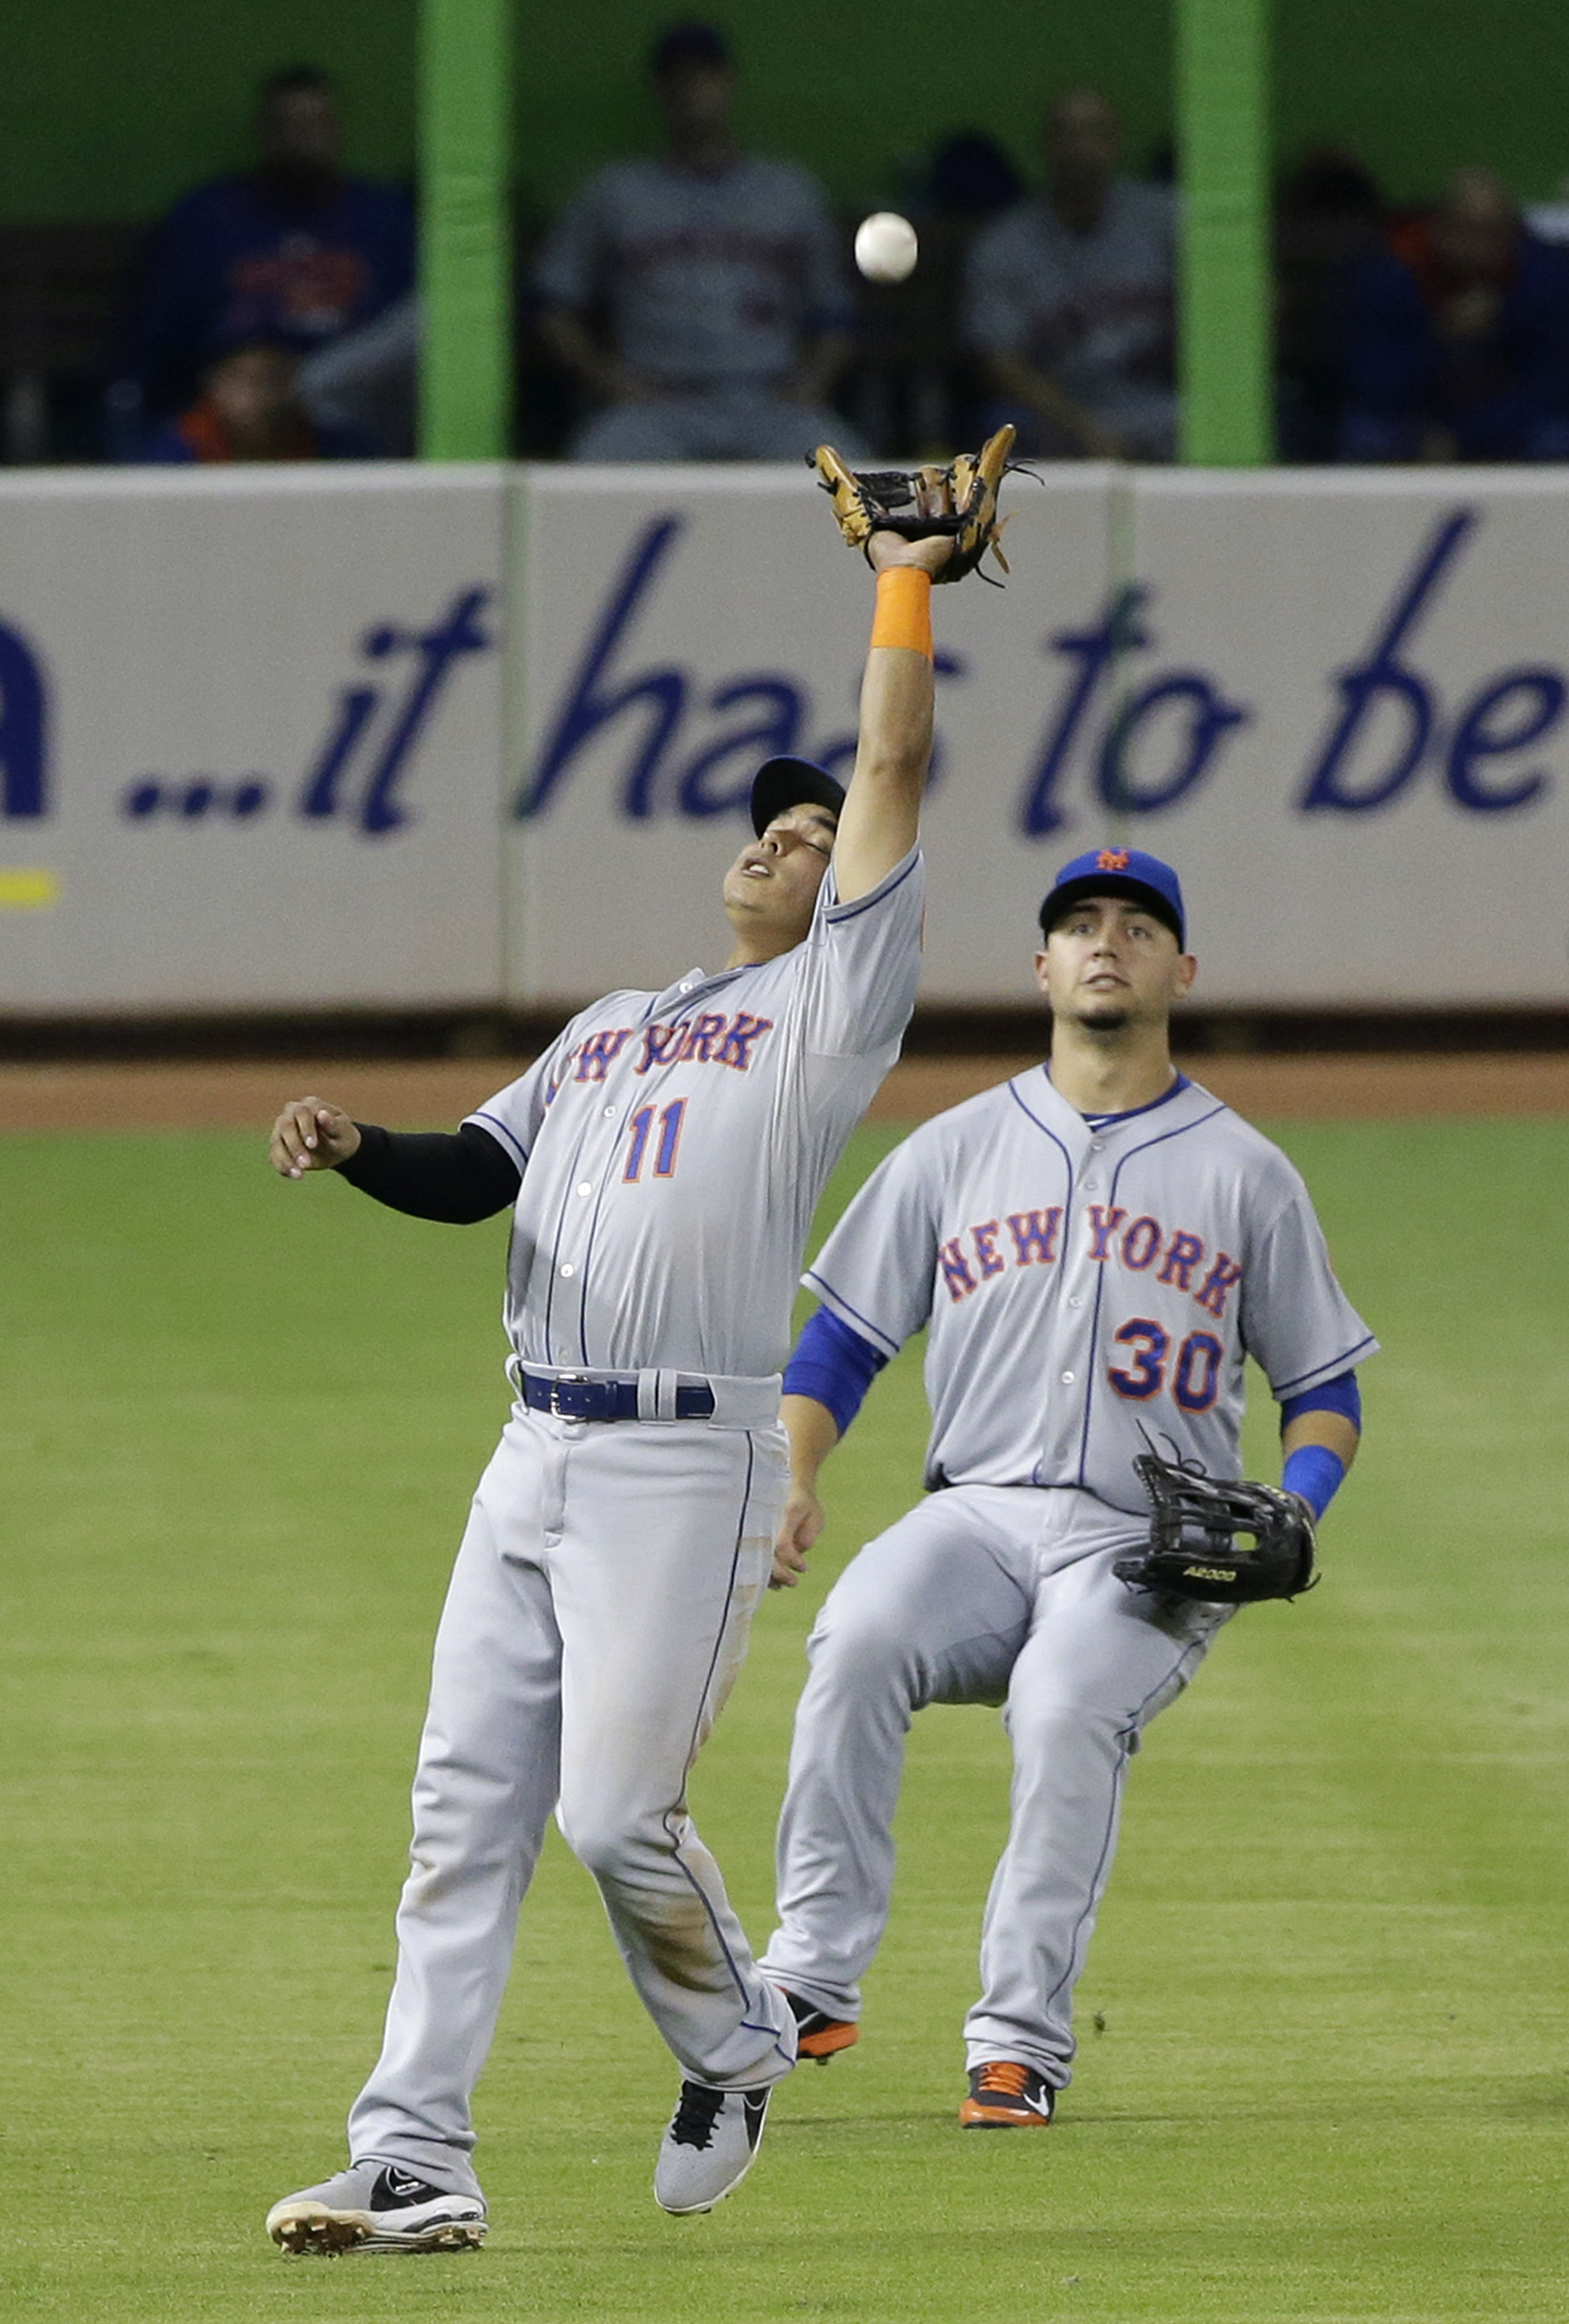 New York Mets shortstop Ruben Tejada (11) catches a ball hit by Miami Marlins' Dee Gordon as left fielder Michael Conforto (30) backs him up during the fourth inning of a baseball game, Friday, Sept. 4, 2015, in Miami. (AP Photo/Wilfredo Lee)